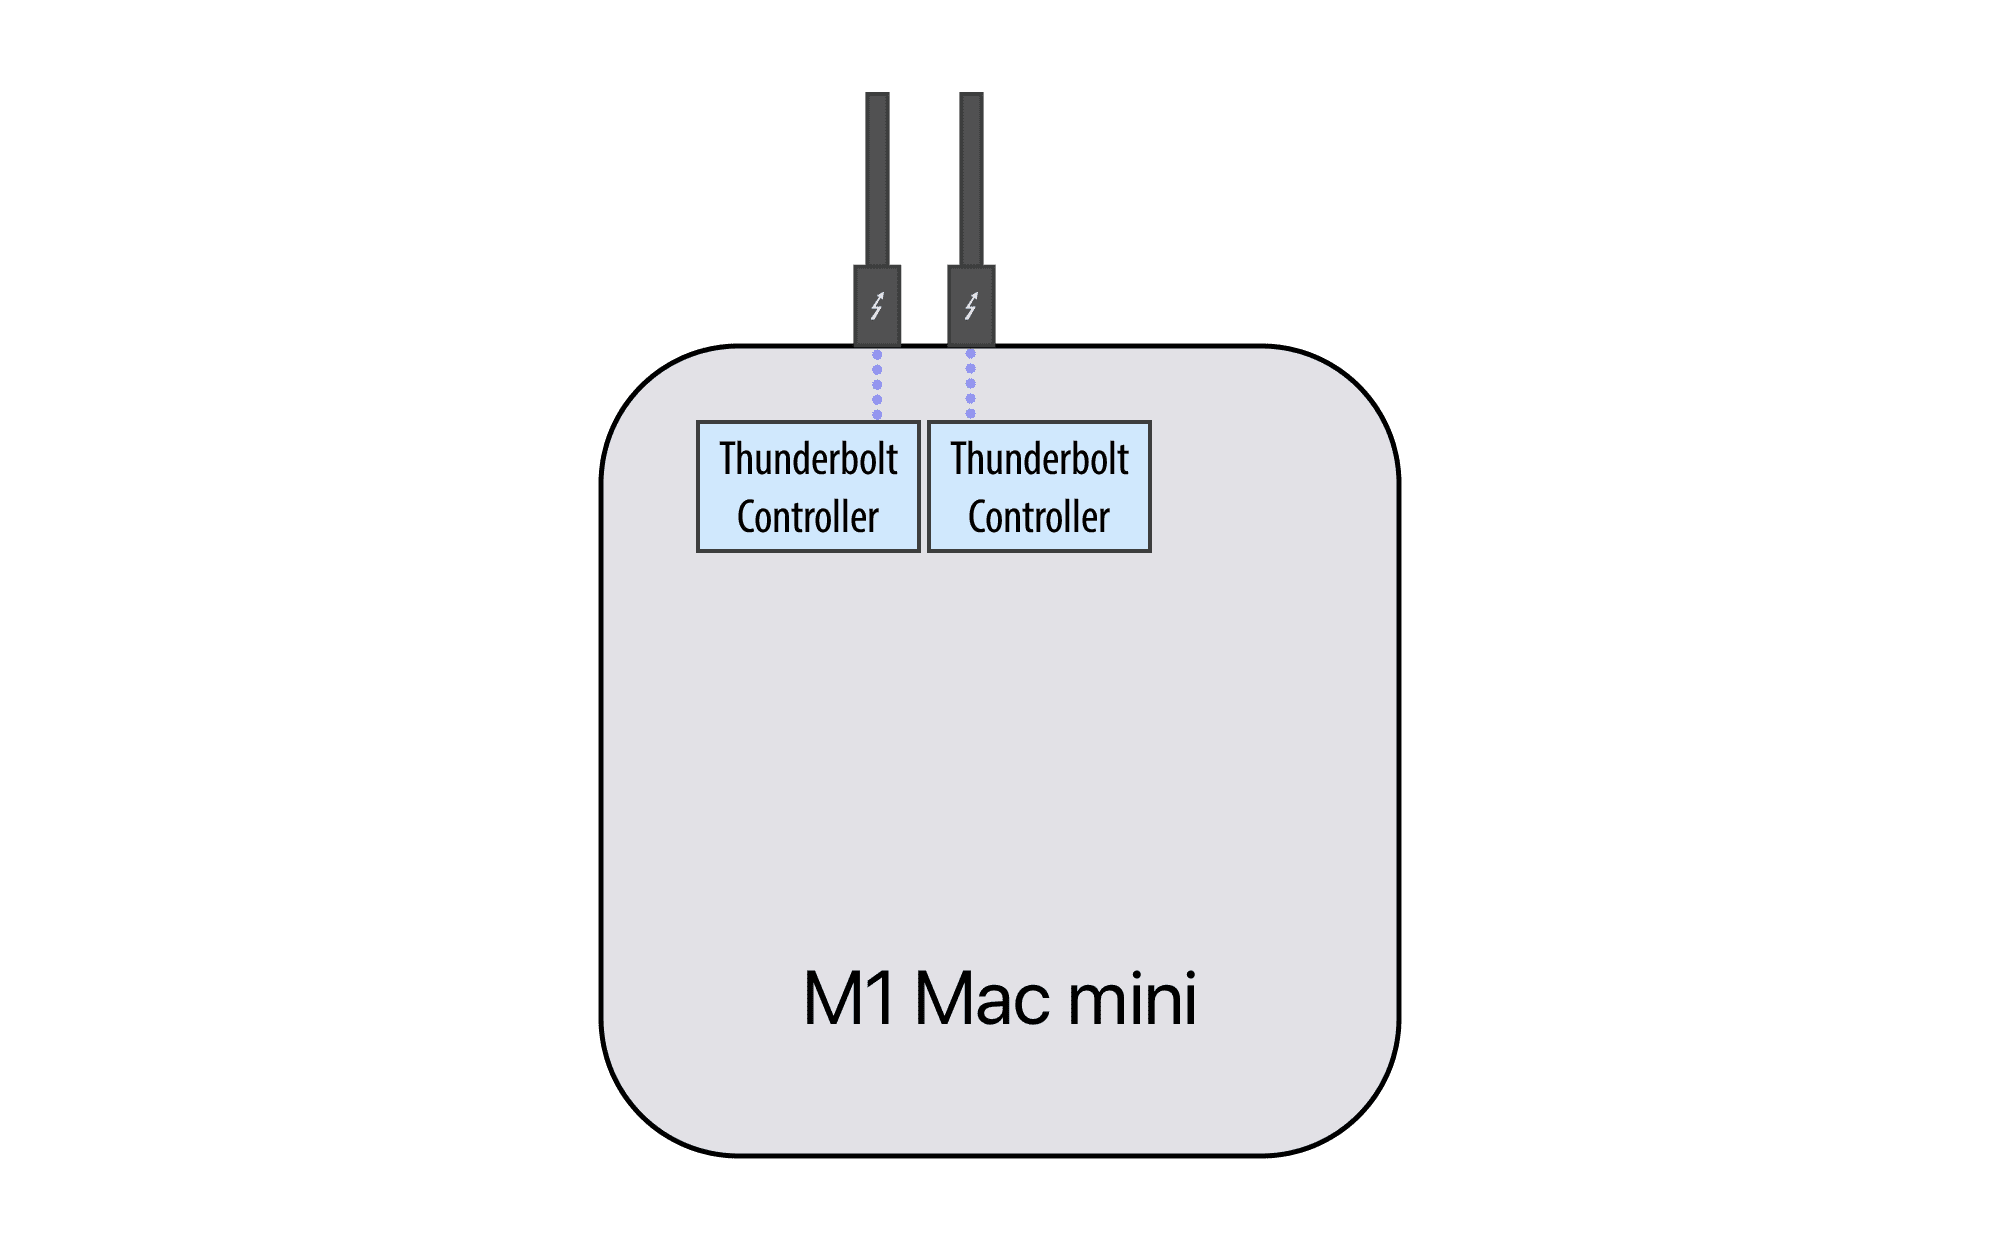 Infographic showing Thunderbolt controllers on an M1 Mac mini